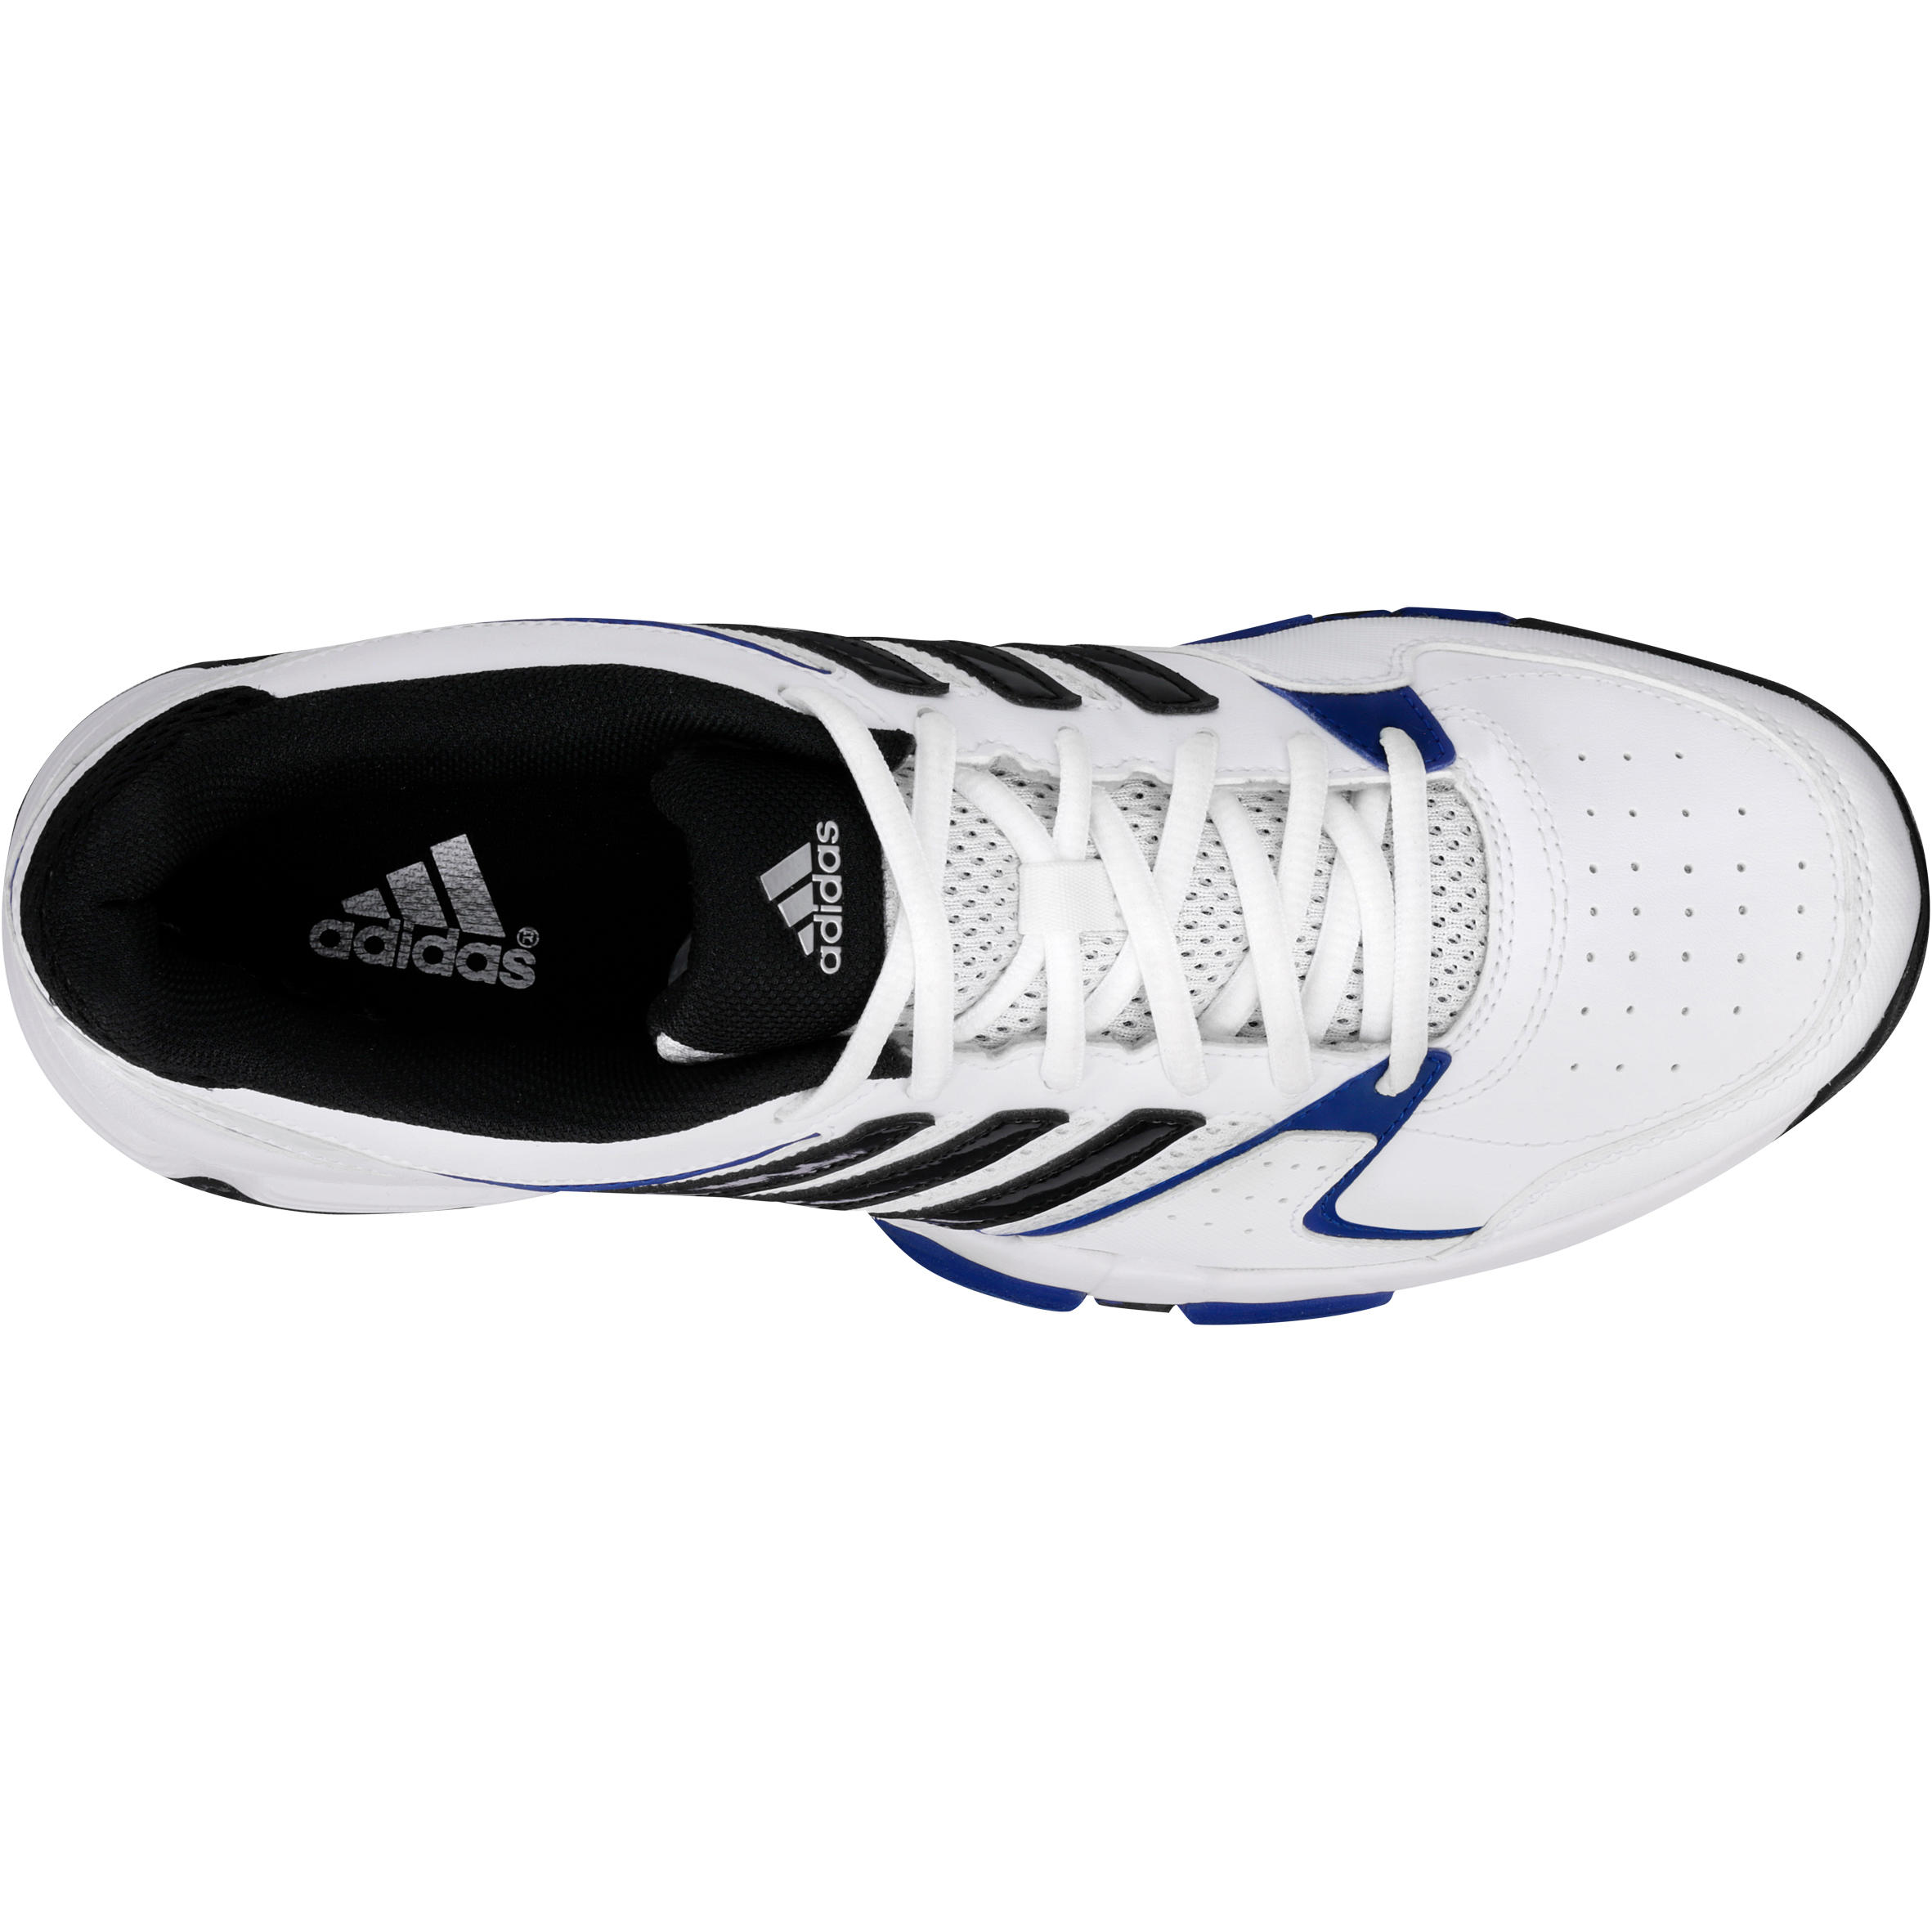 adidas fast court homme